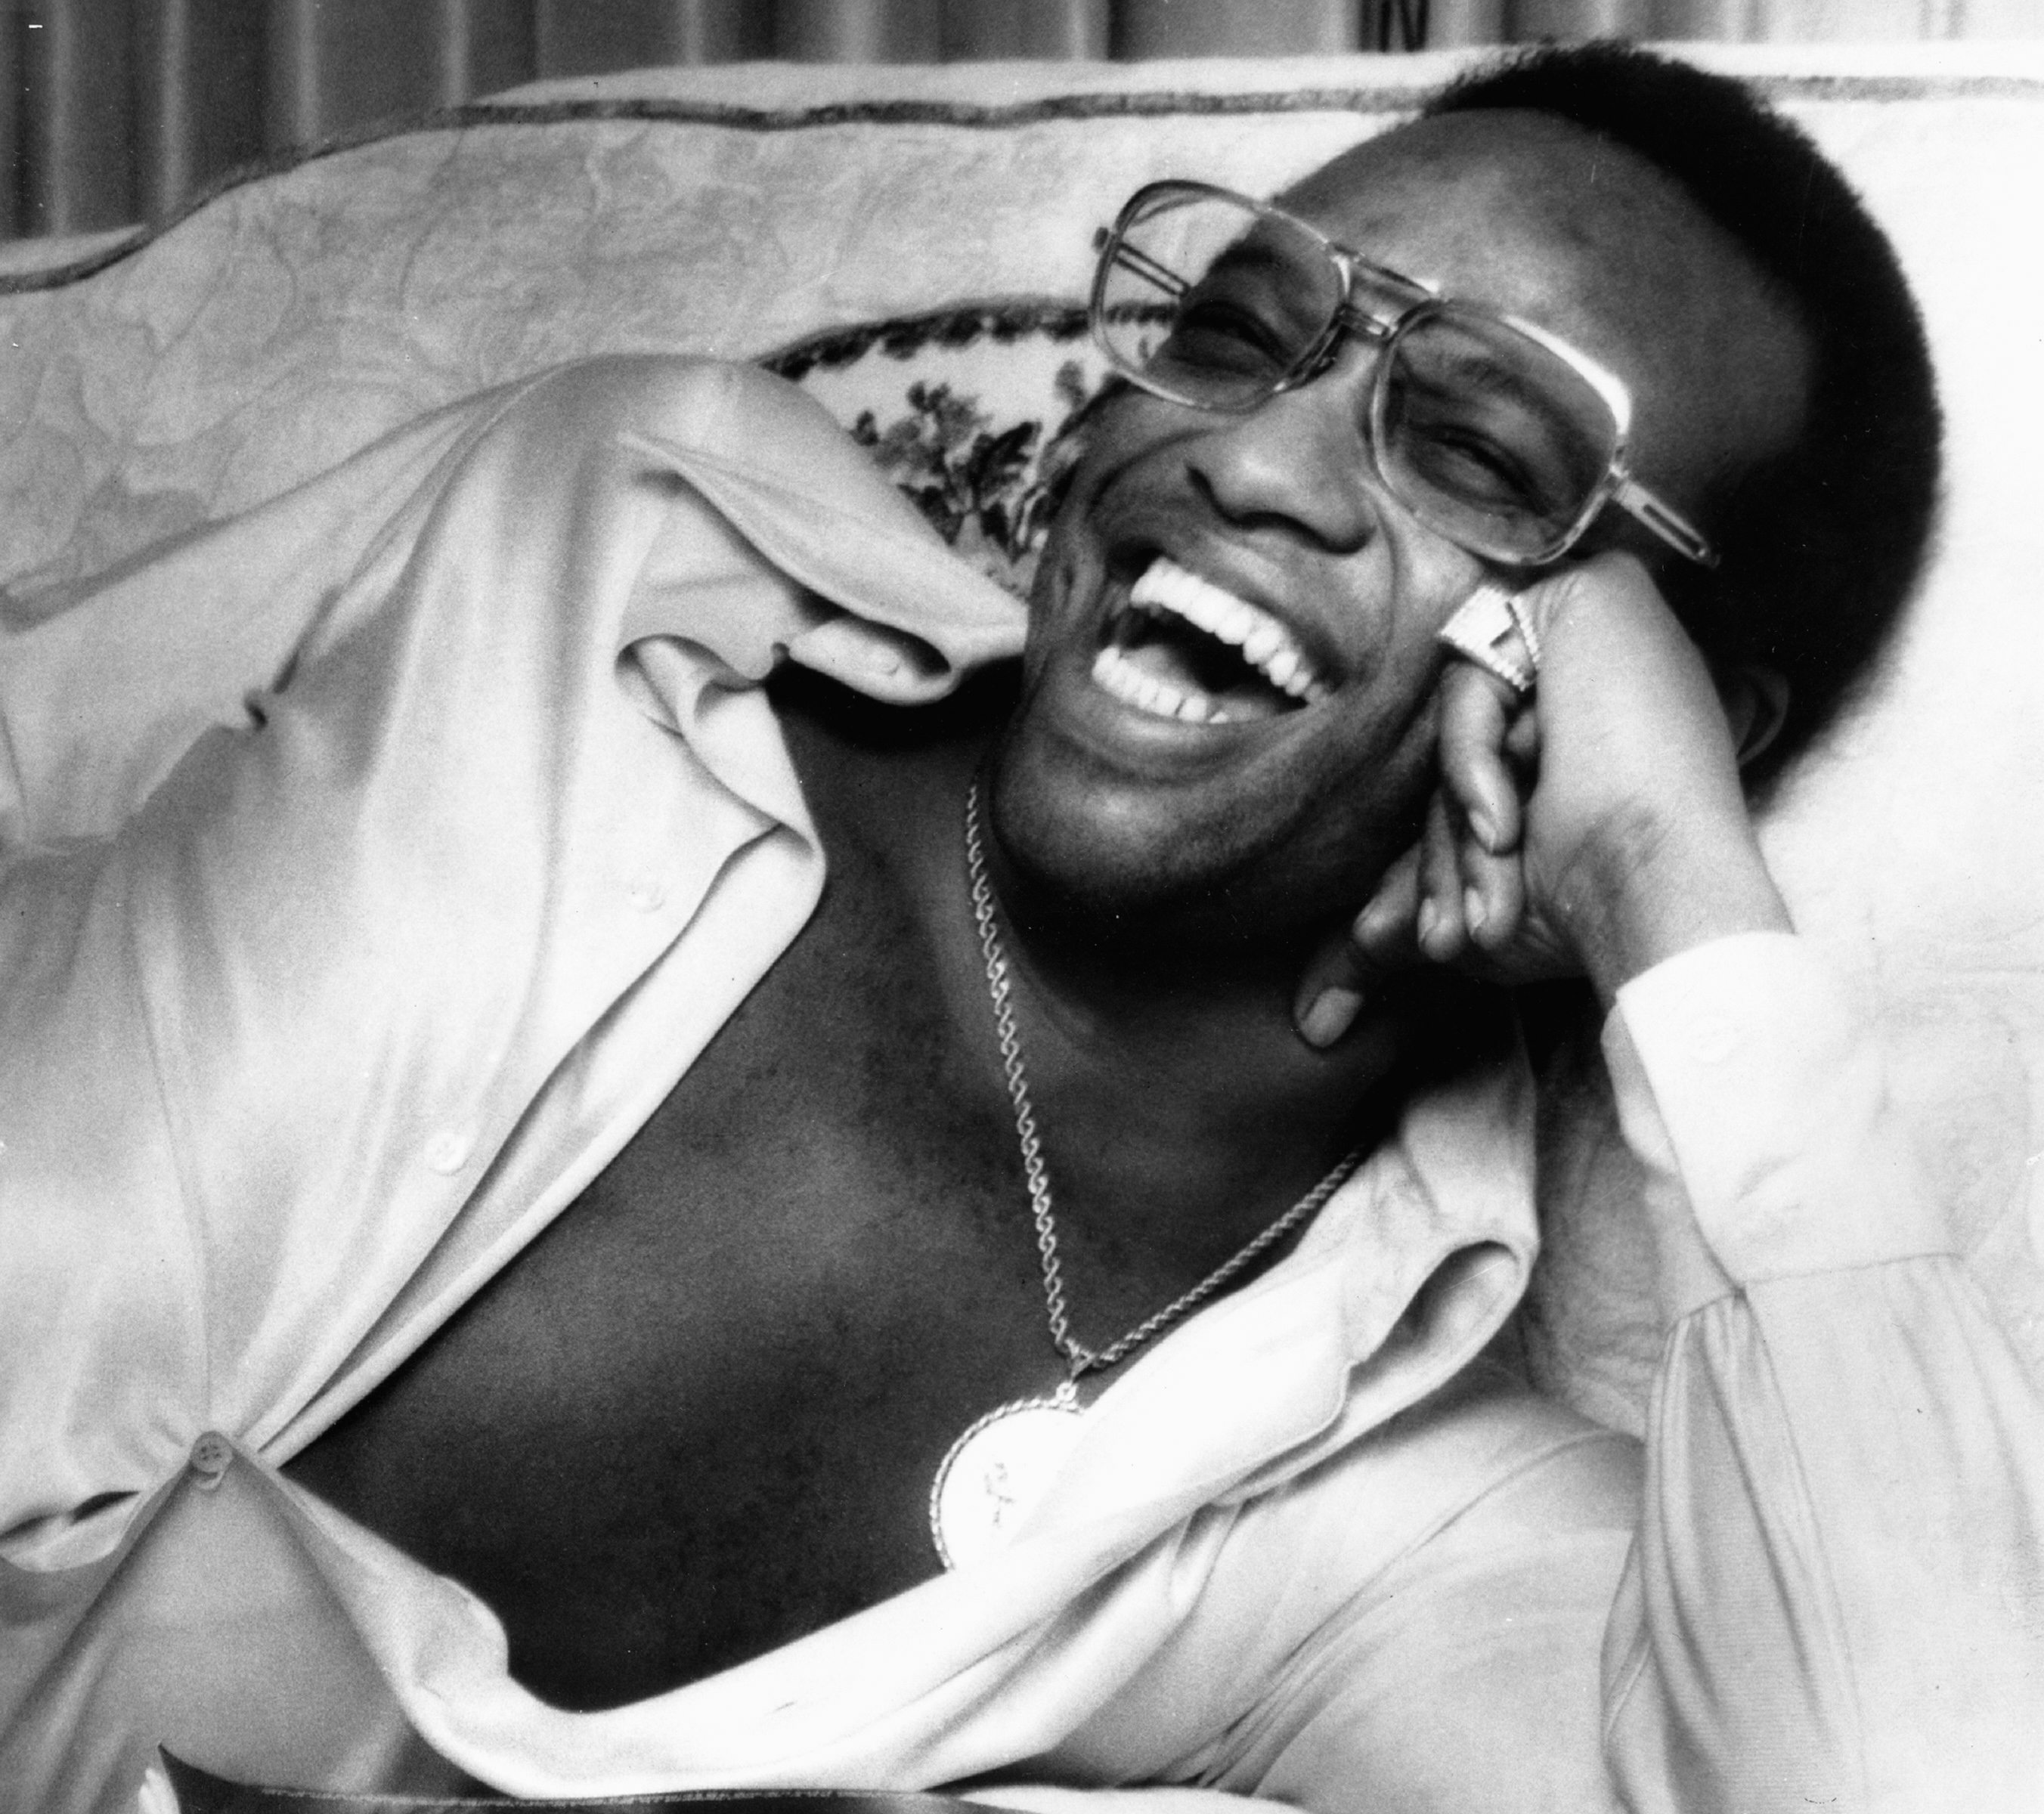 UNSPECIFIED - JANUARY 01:  Photo of Bobby WOMACK; Posed portrait of Bobby Womack, sunglasses  (Photo by Echoes/Redferns)